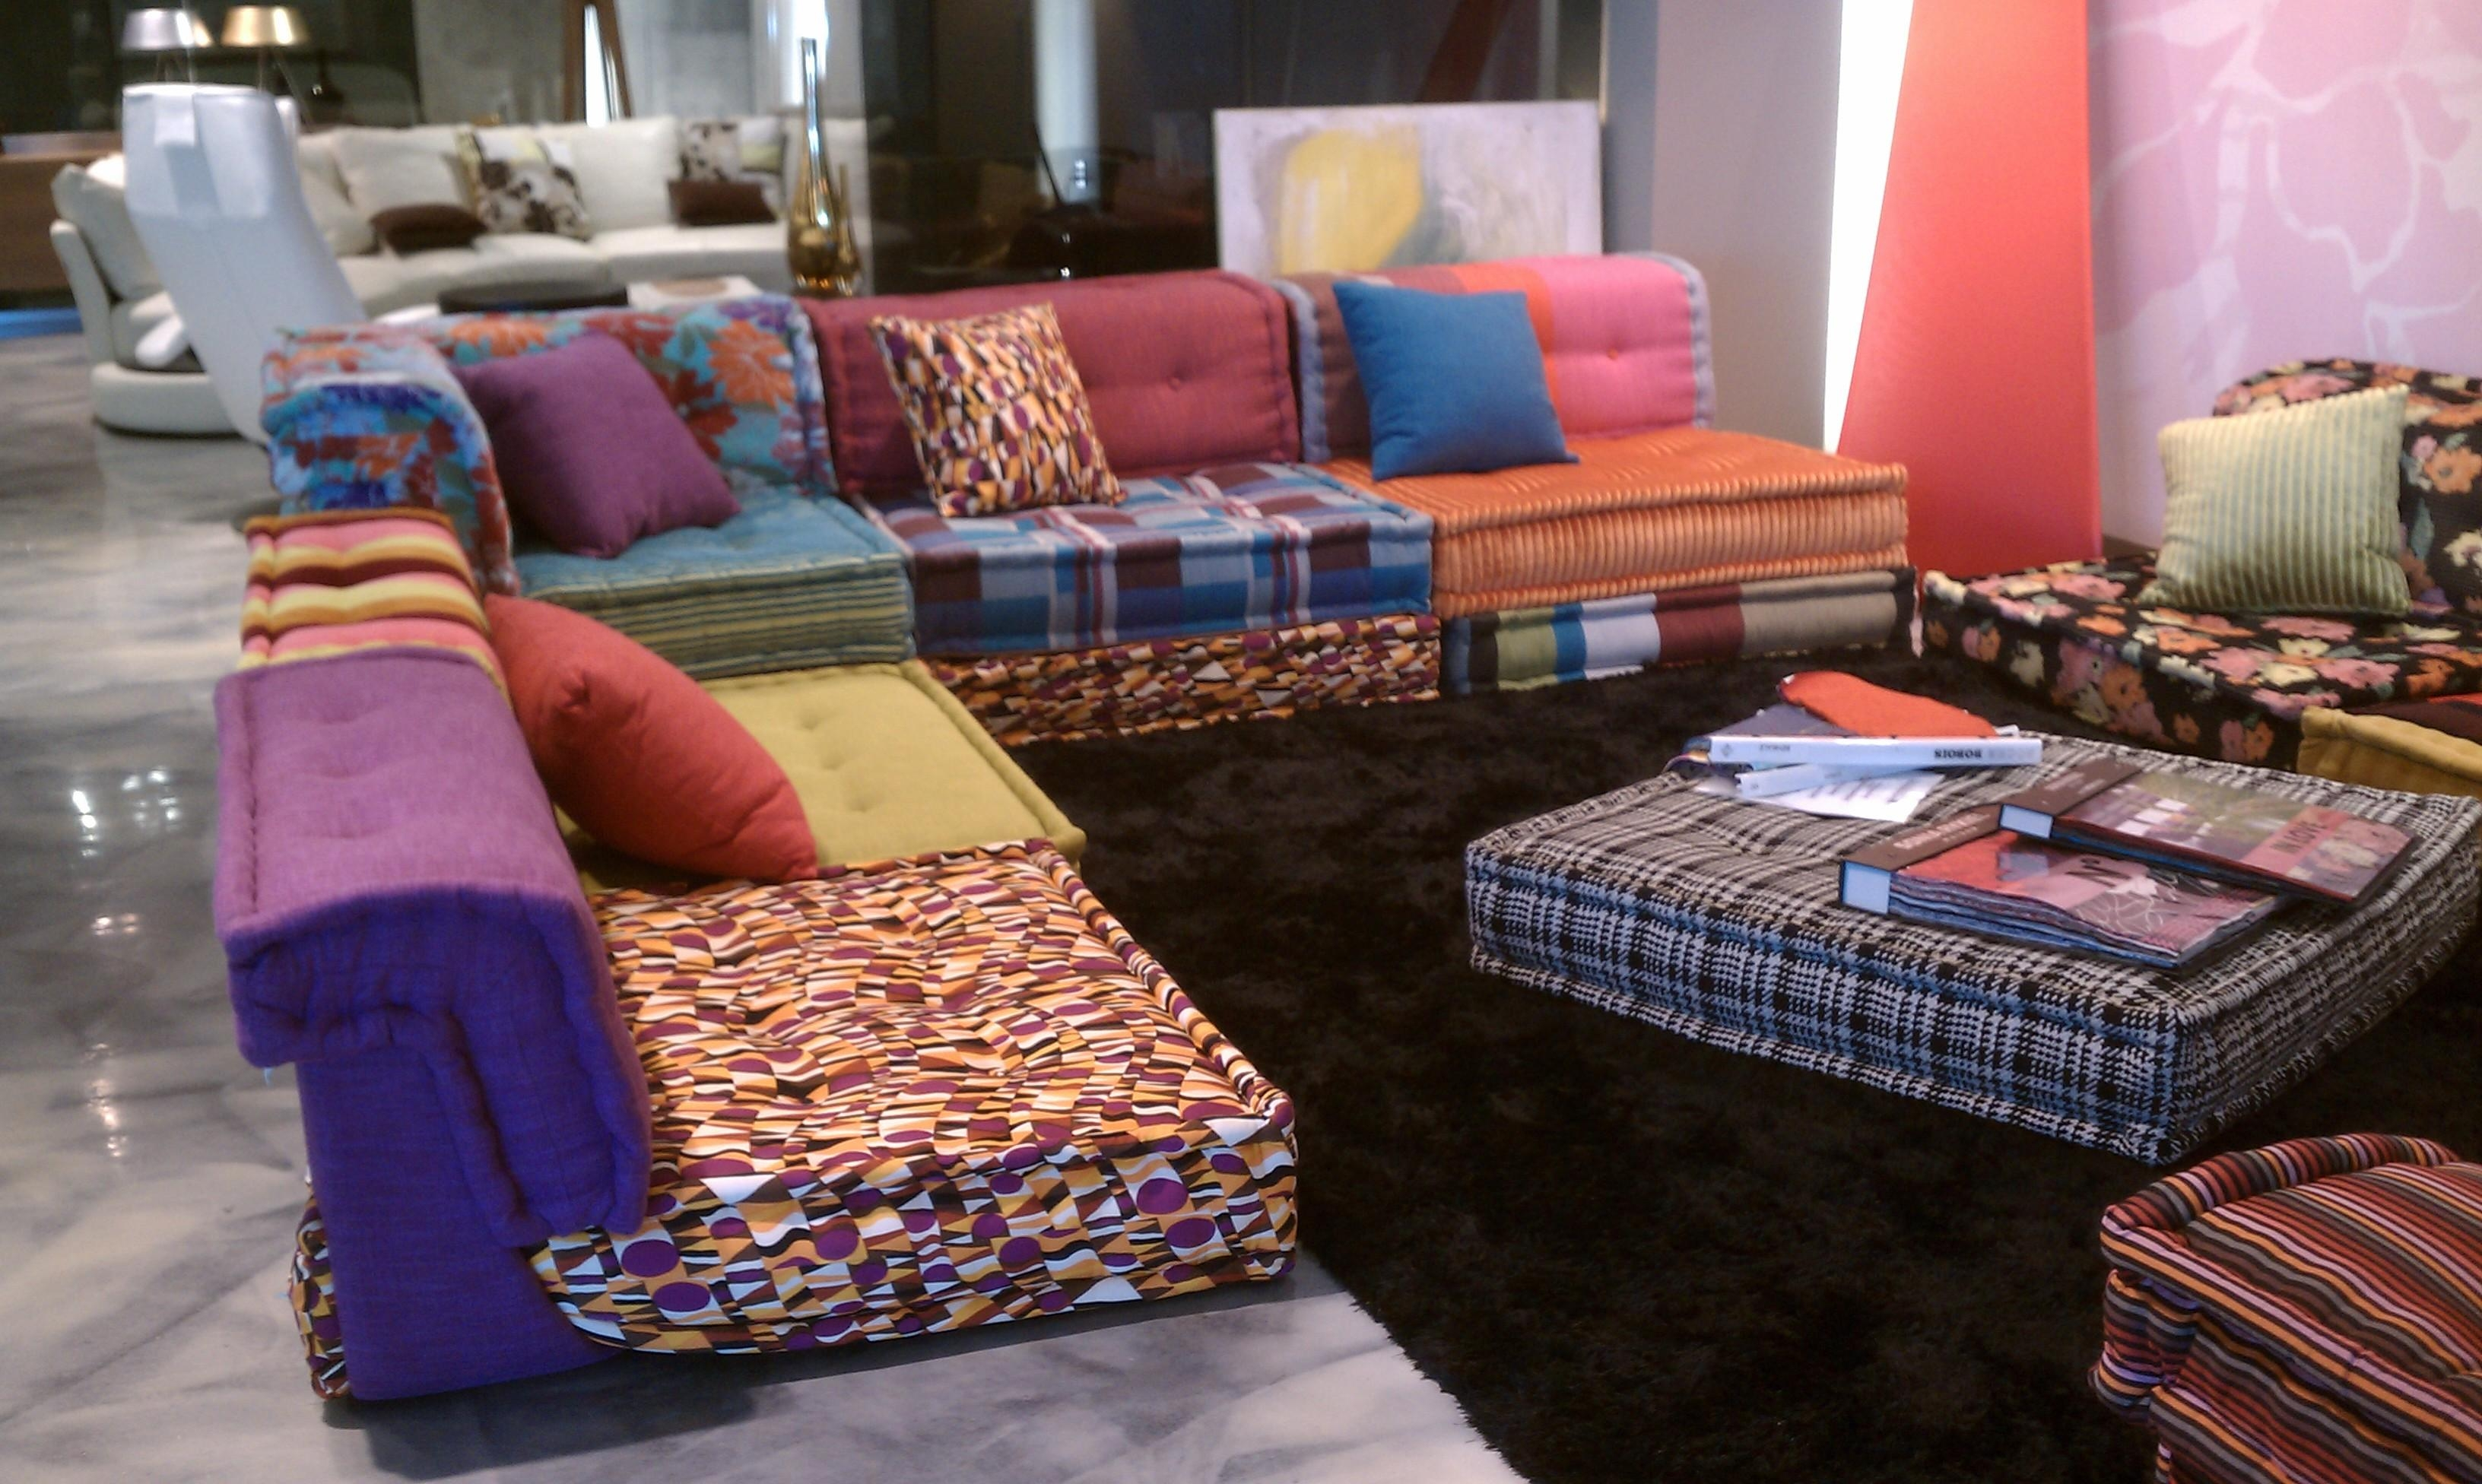 Dream Couch: Missoni Bohemian Sofa | The Cherie Bomb Inside Roche Bobois Mah Jong Sofas (View 15 of 20)